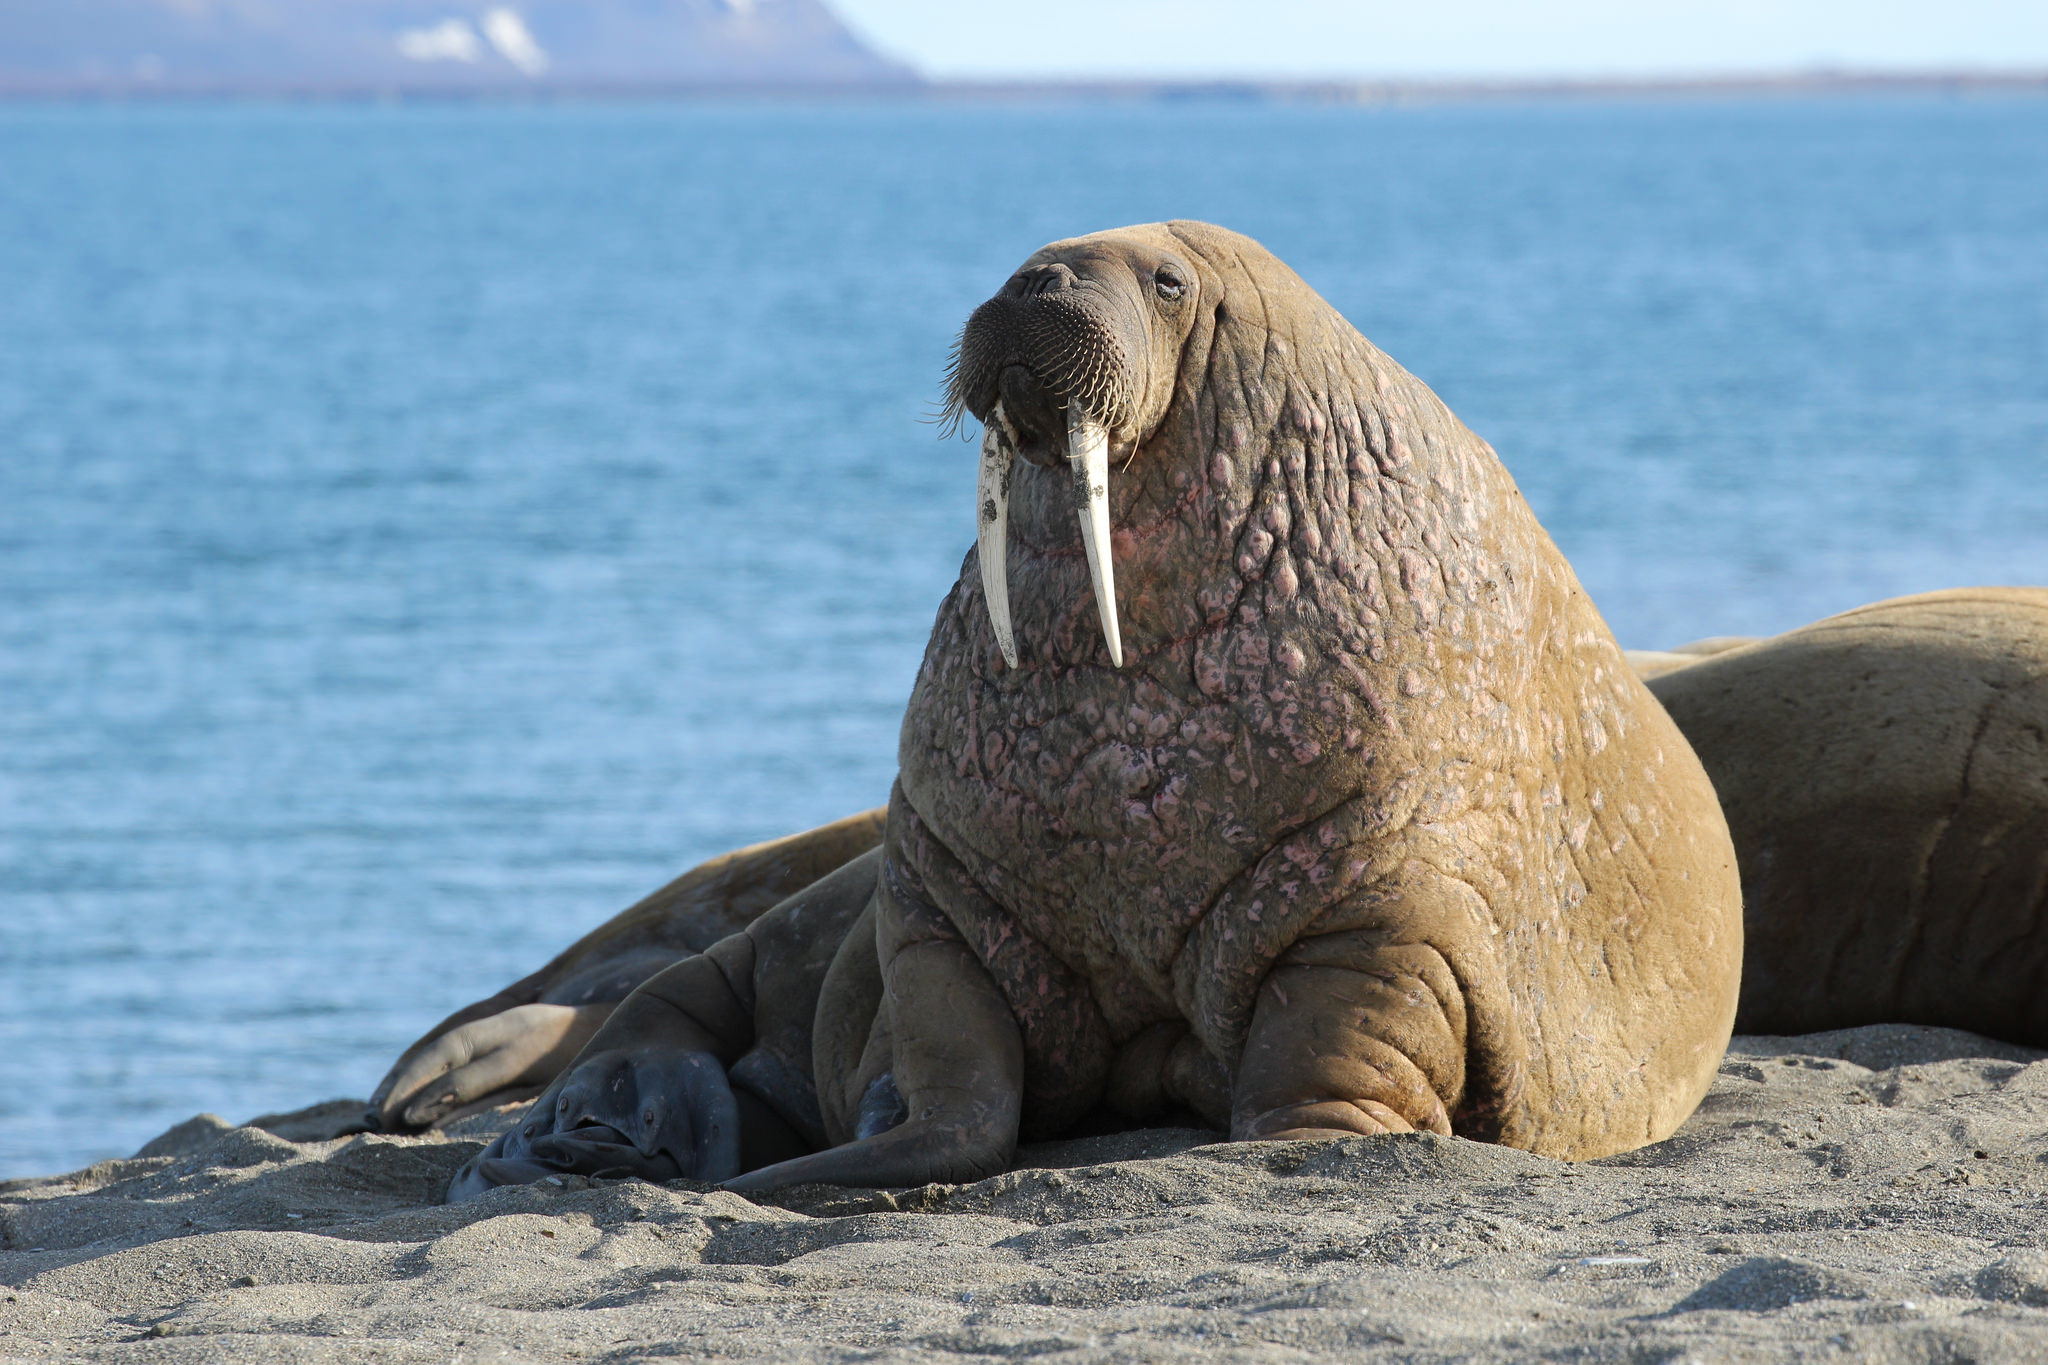 Walrus in winter photo